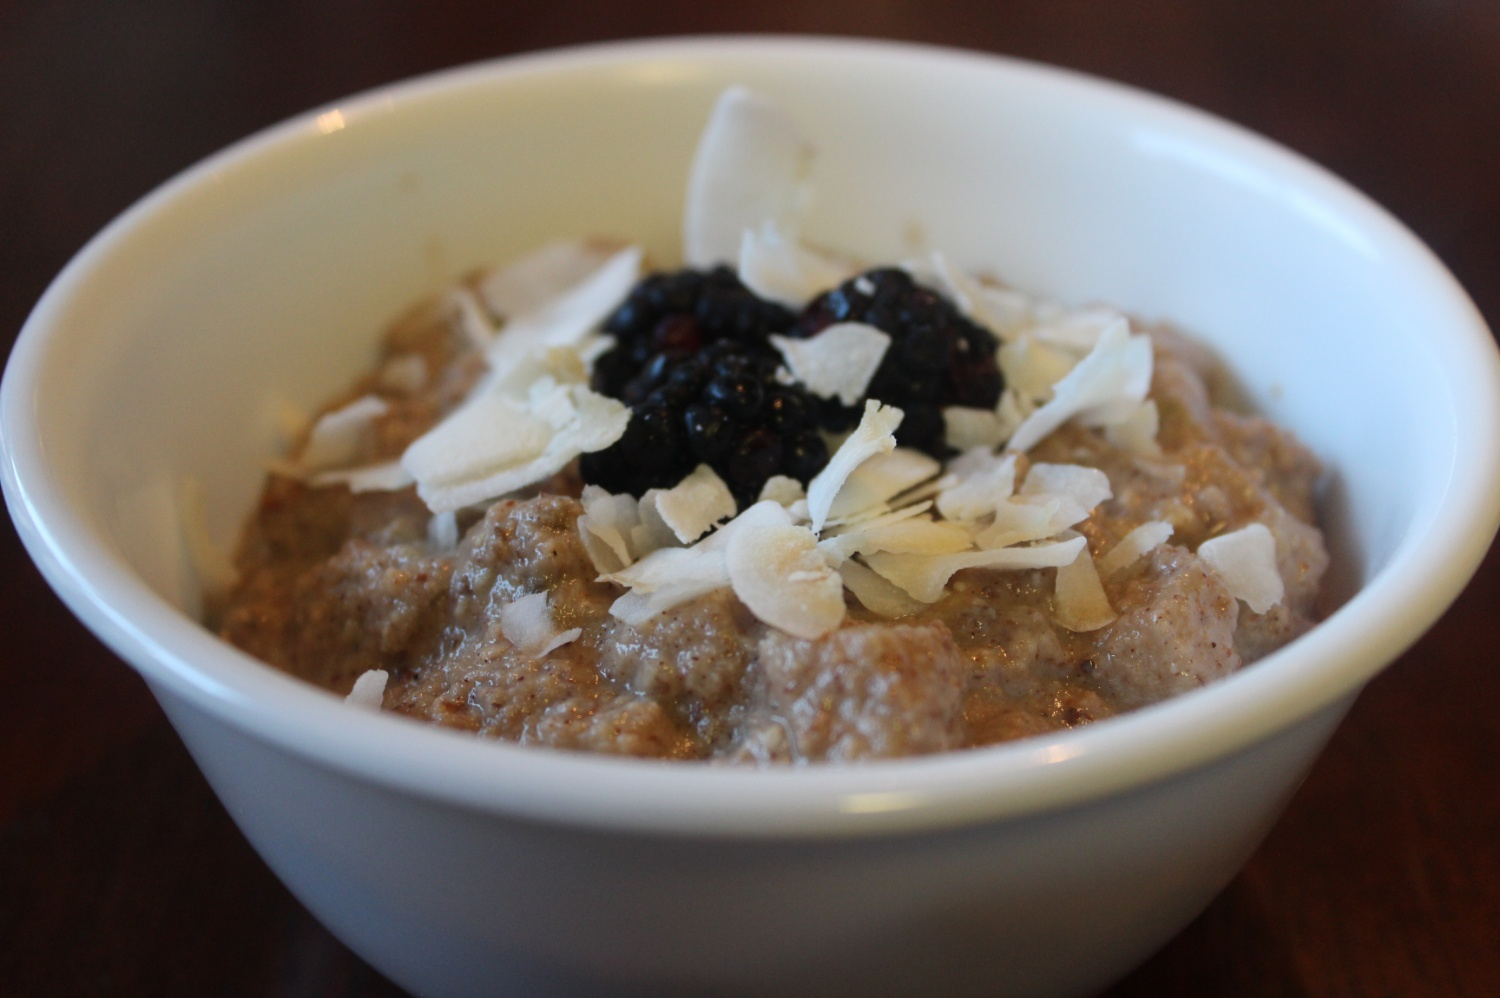 Paleo Oatmeal (Not Really Oatmeal At All)